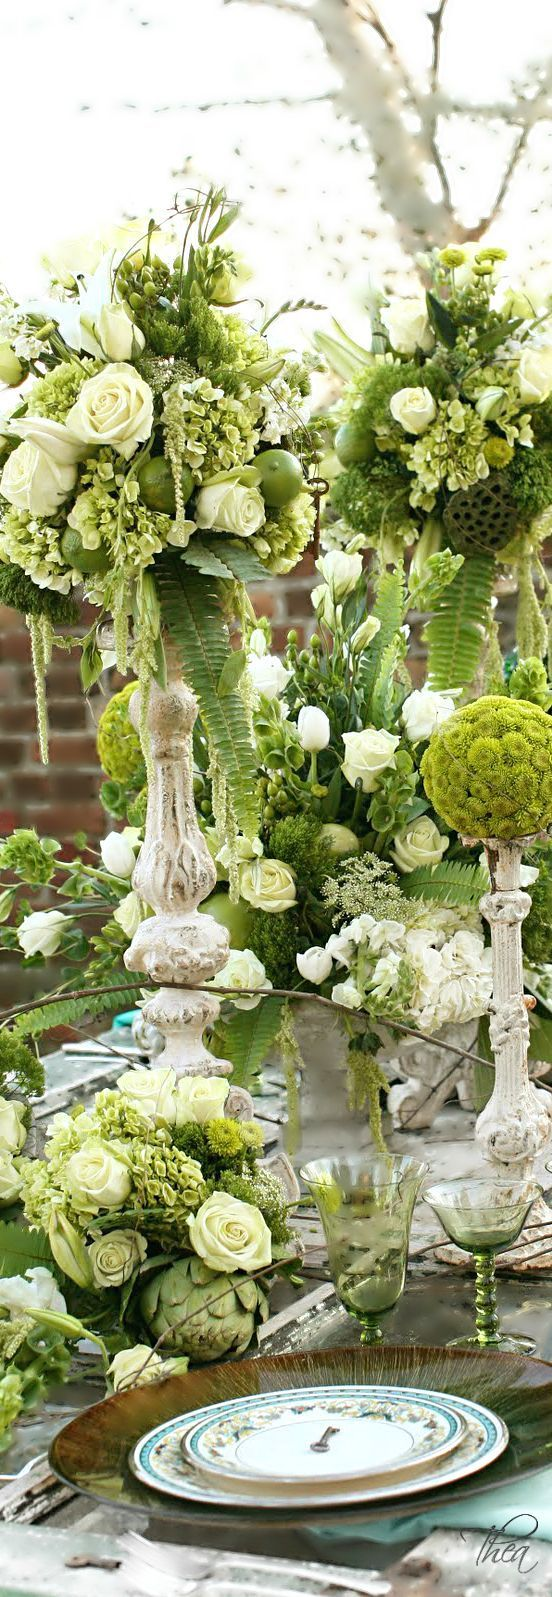 Love This Romantic Look In Green Find High Quality Silk Flowers